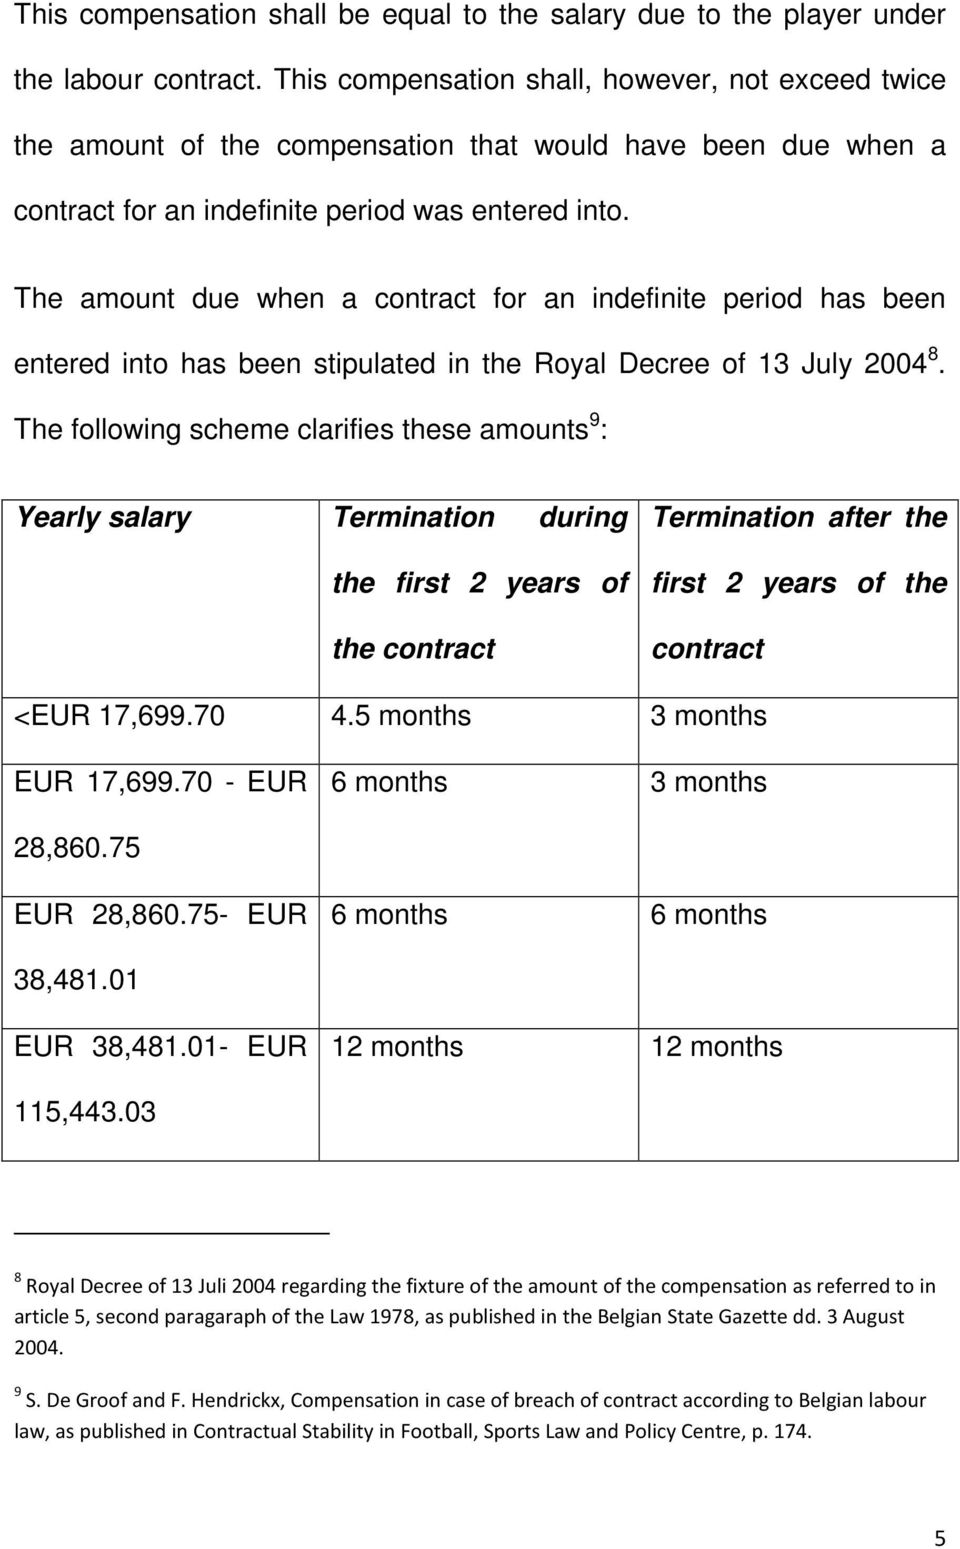 The amount due when a contract for an indefinite period has been entered into has been stipulated in the Royal Decree of 13 July 2004 8.